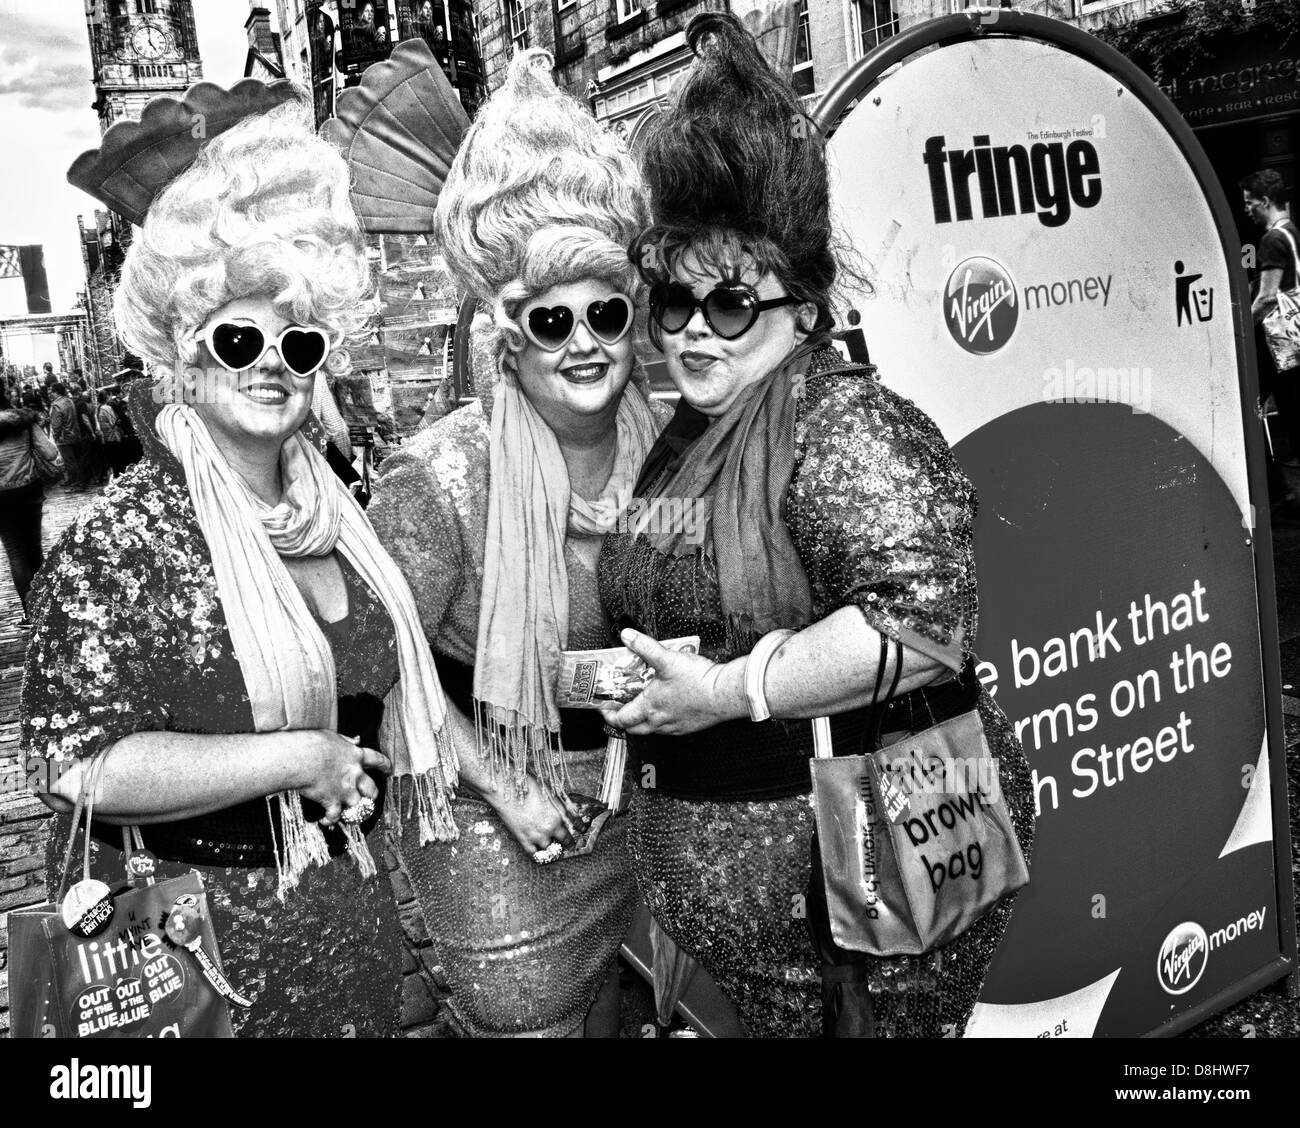 The Sundaes, Knickerbocker Glory, Edinburgh Festival Fringe Act, Scotland, UK, EH1 1QS - Stock Image